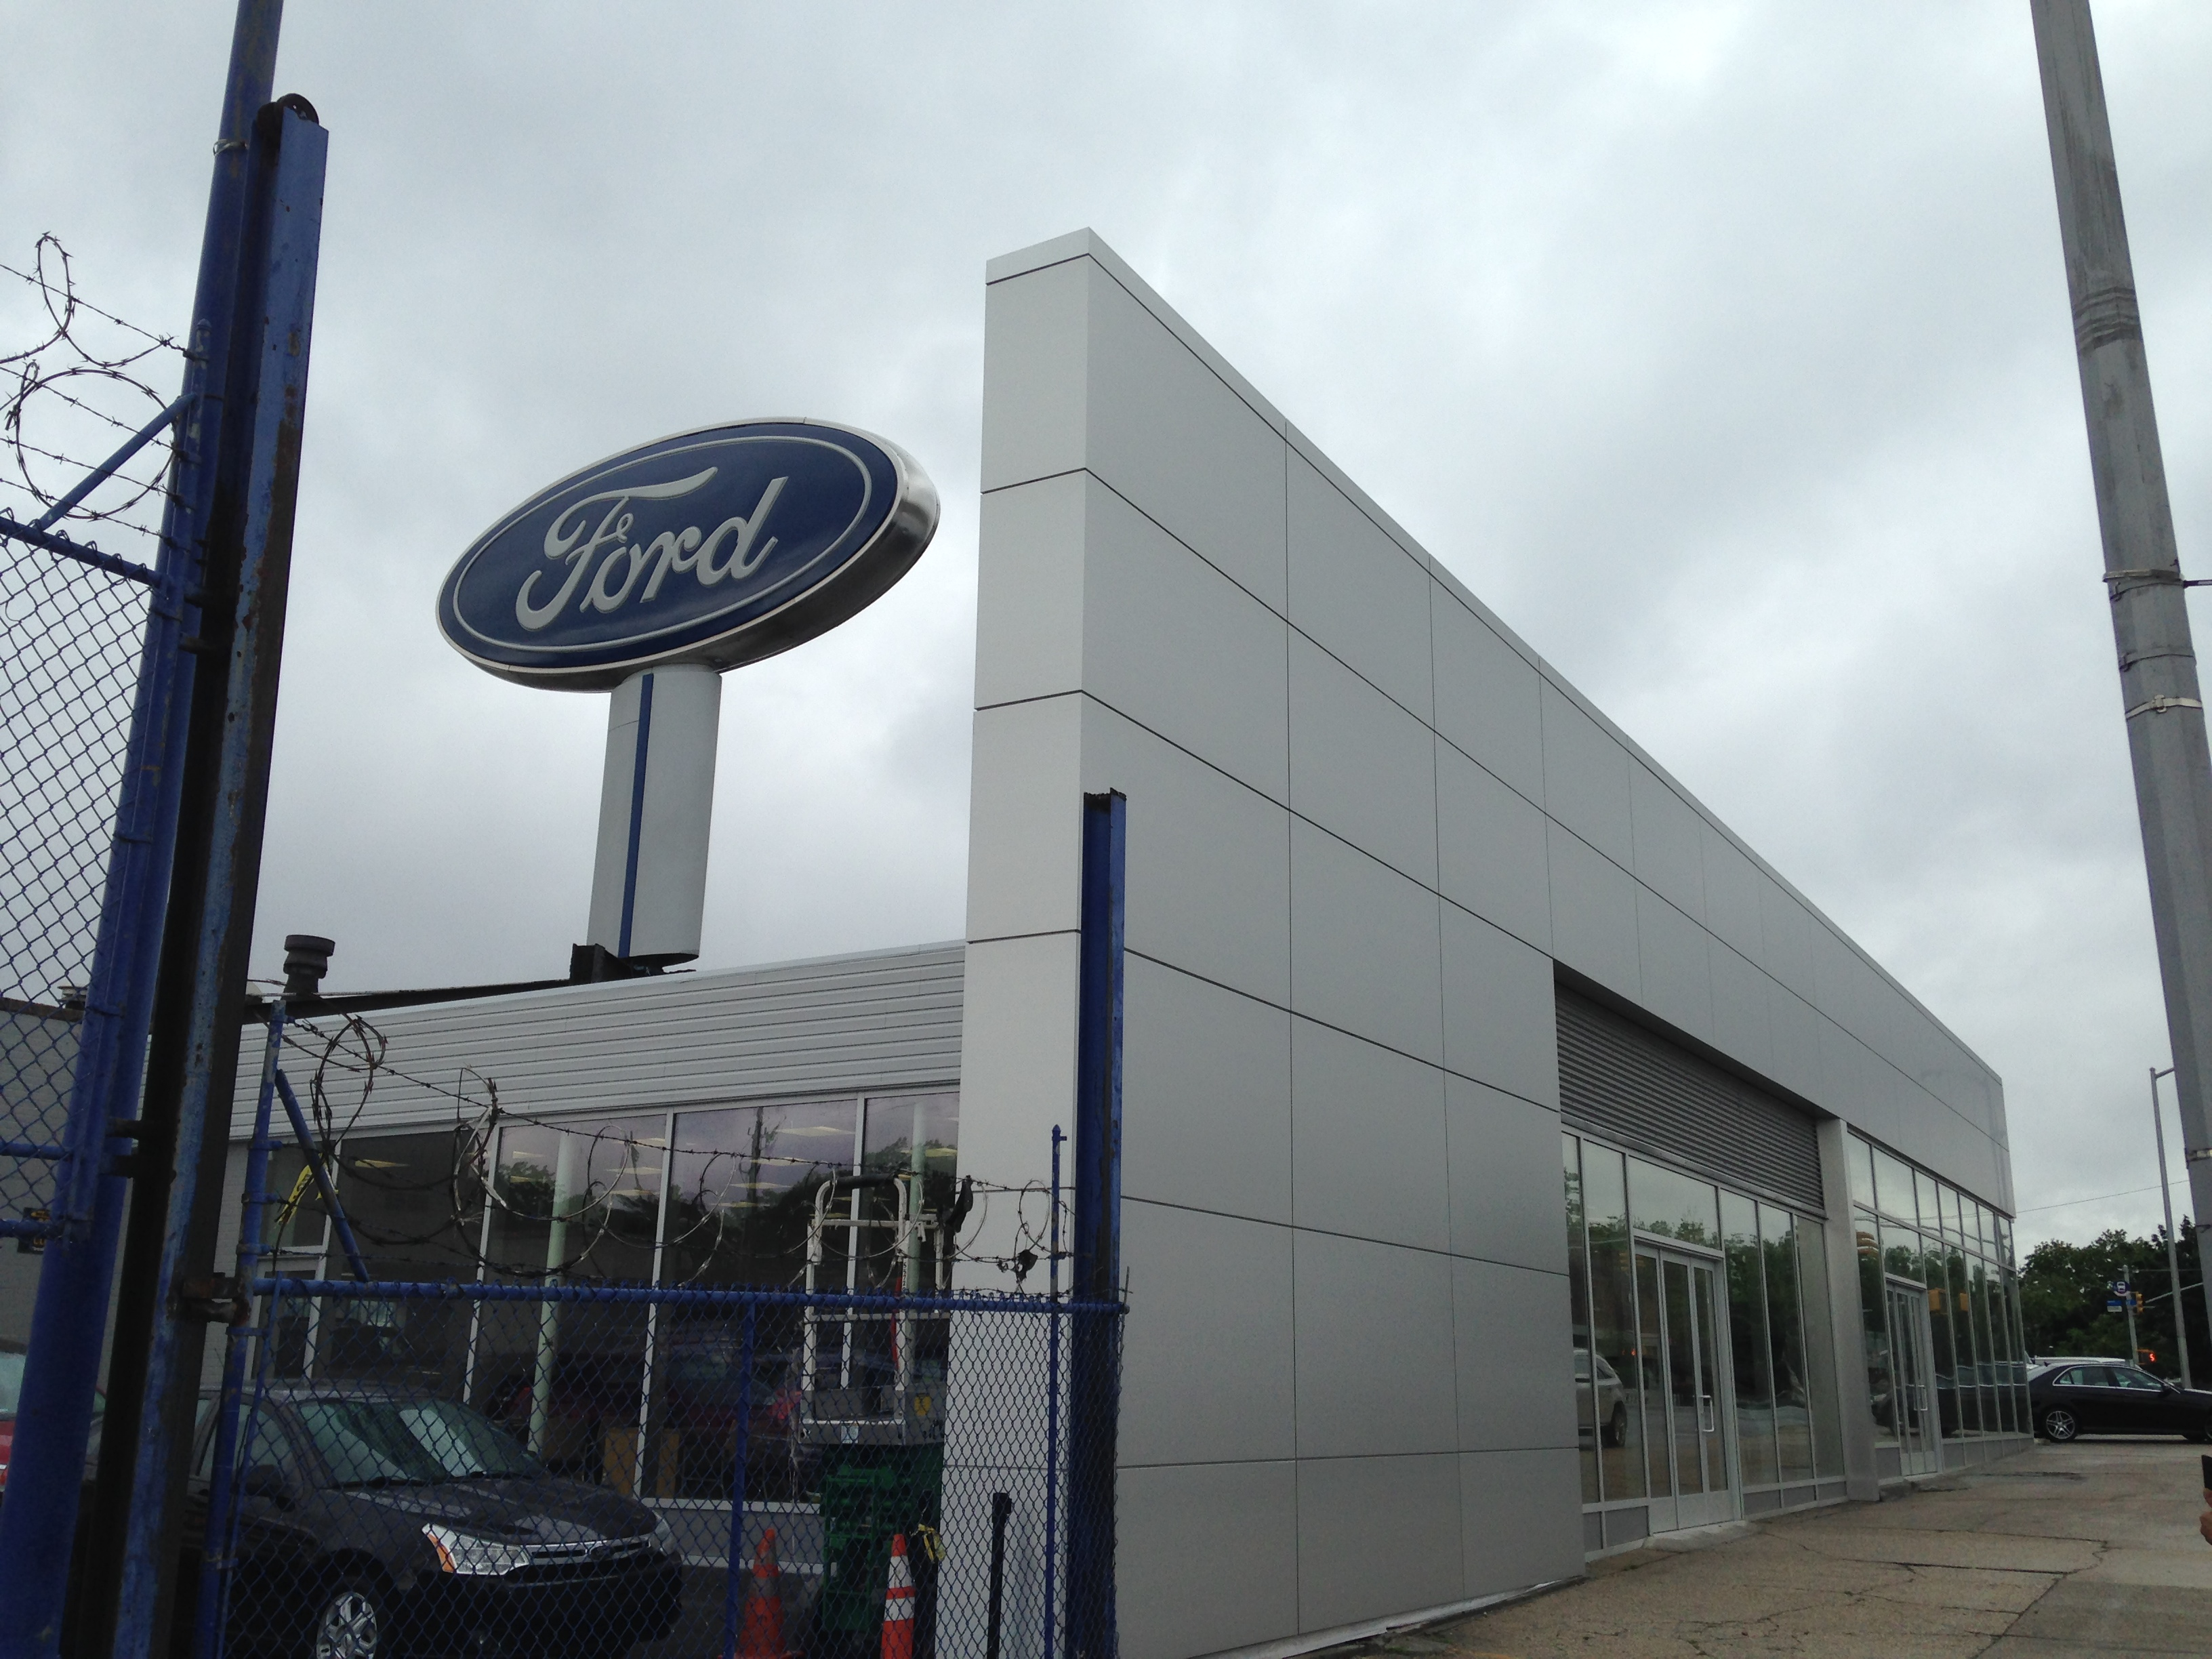 Ford Dealership Brooklyn >> Amg Contracting Services Inc Premier Ford Dealership